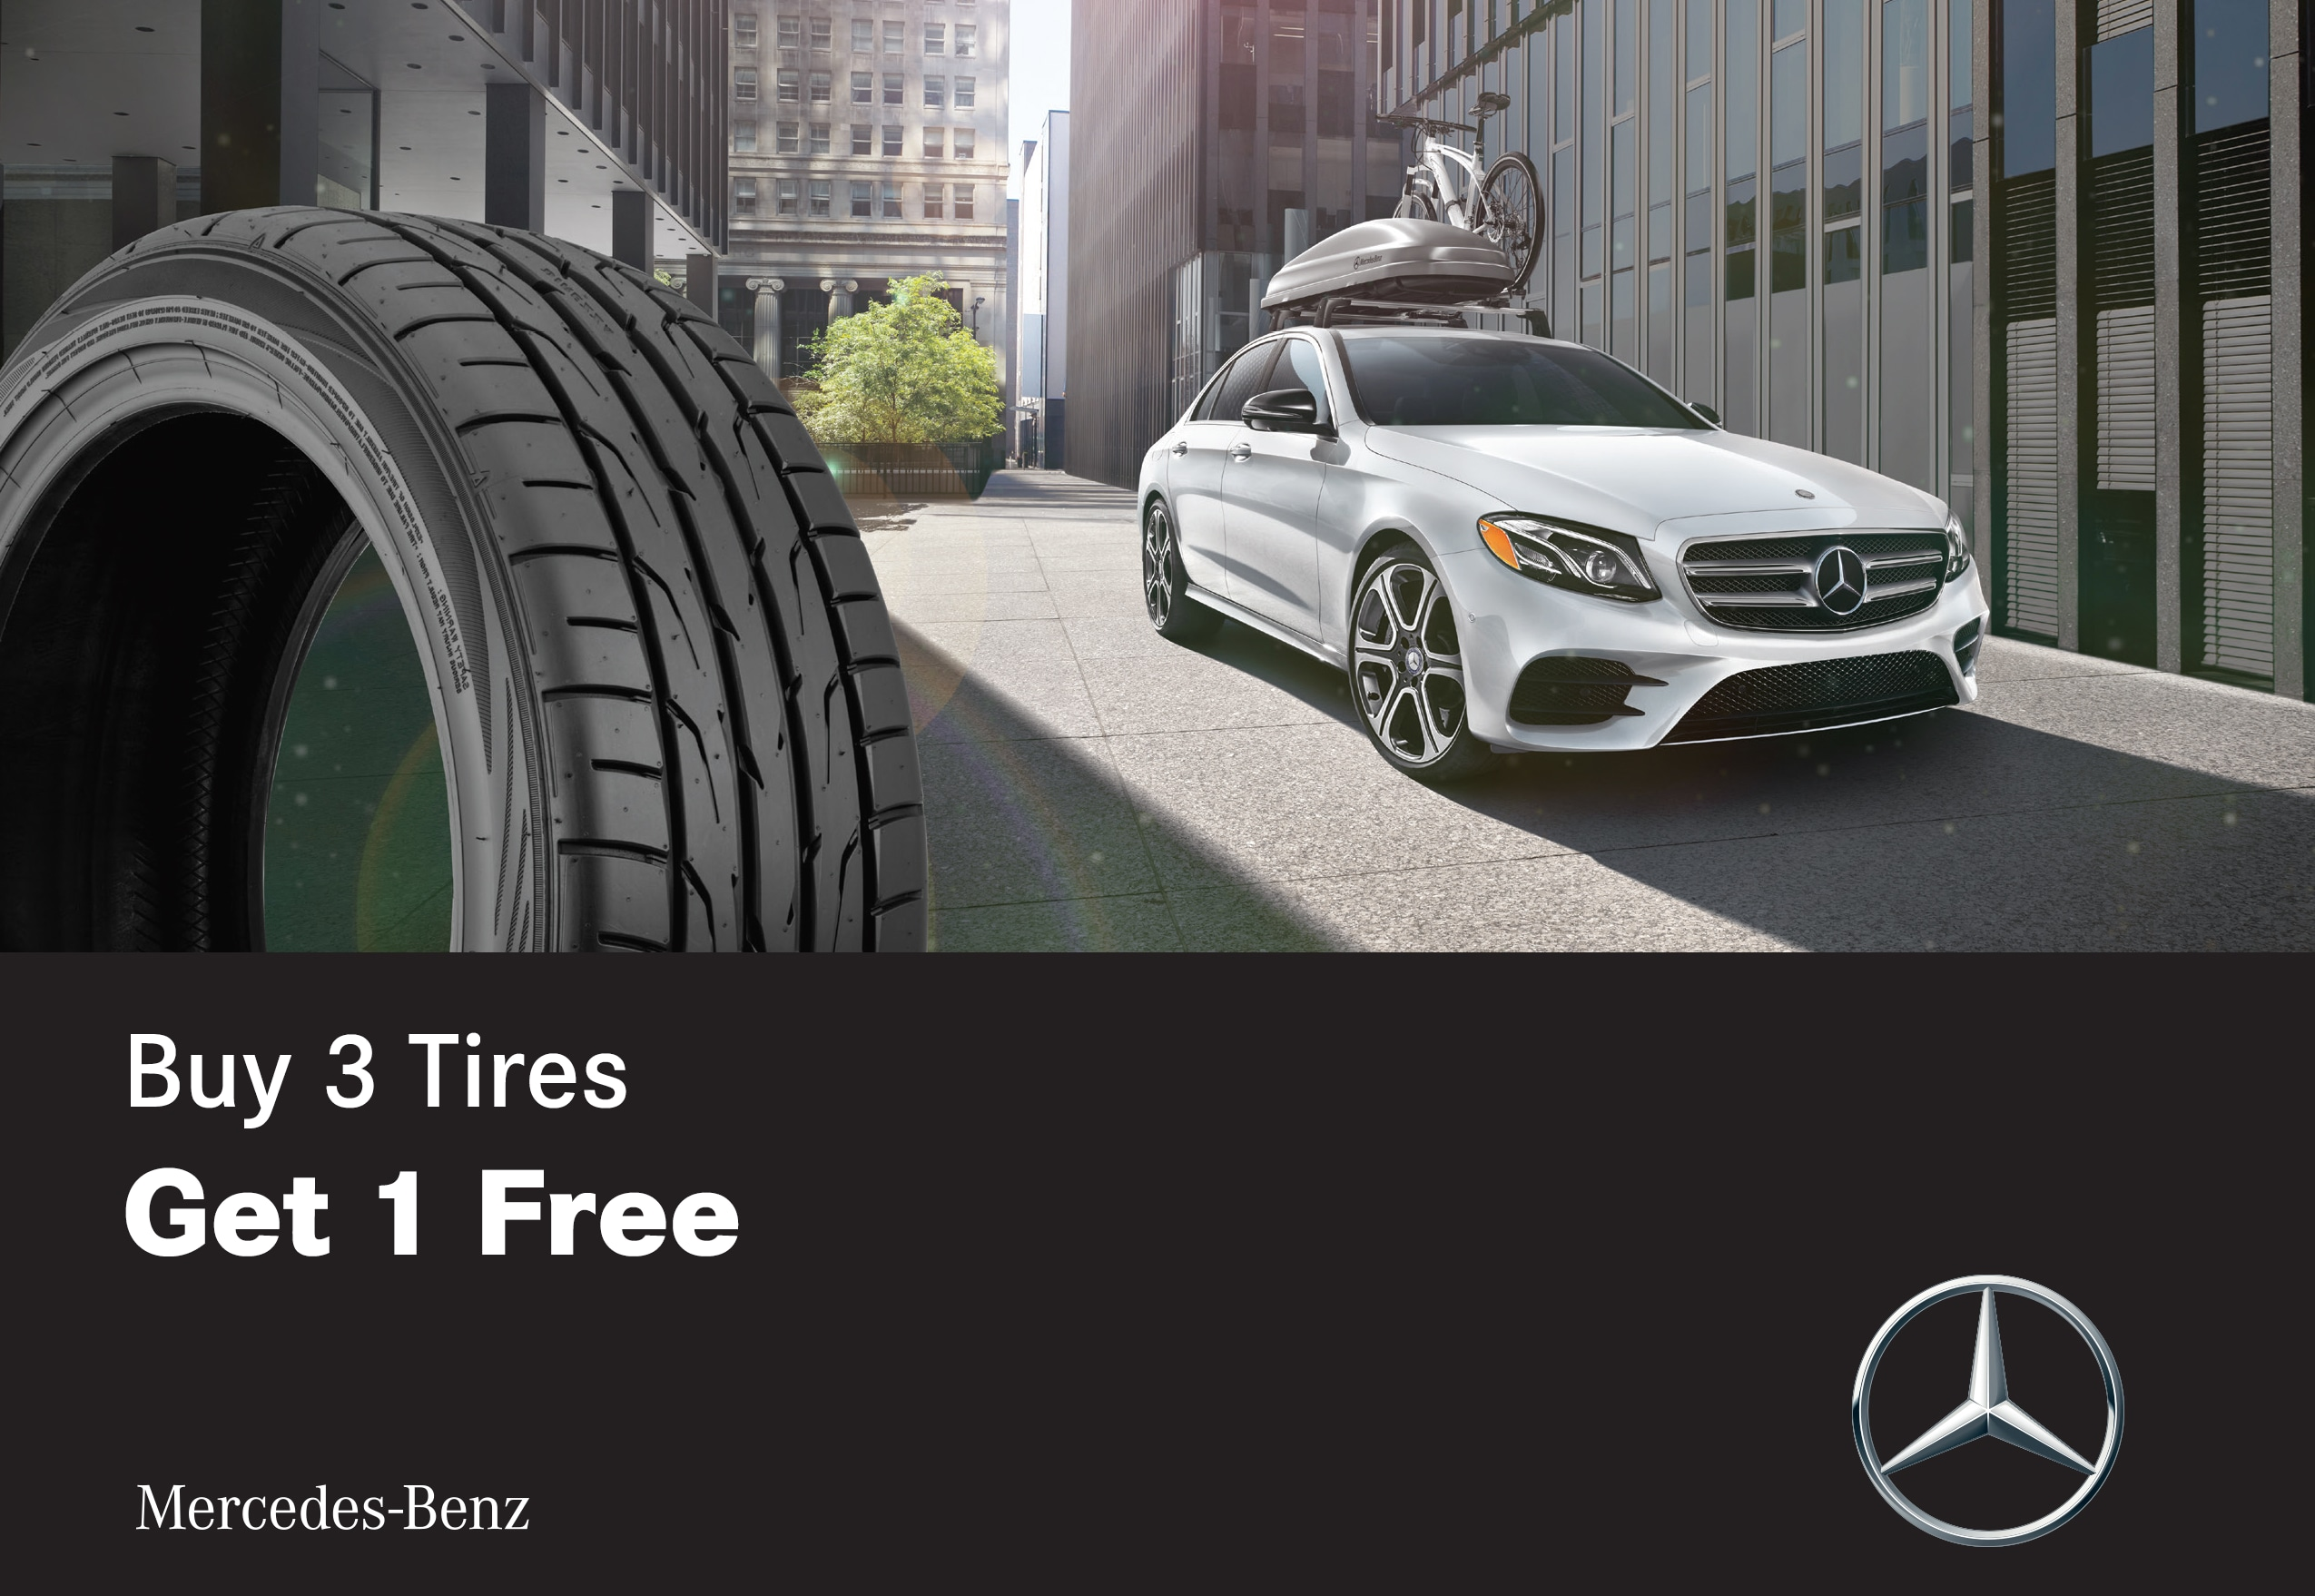 Mercedes Benz Tire Special - Buy 3 tires get 1 free